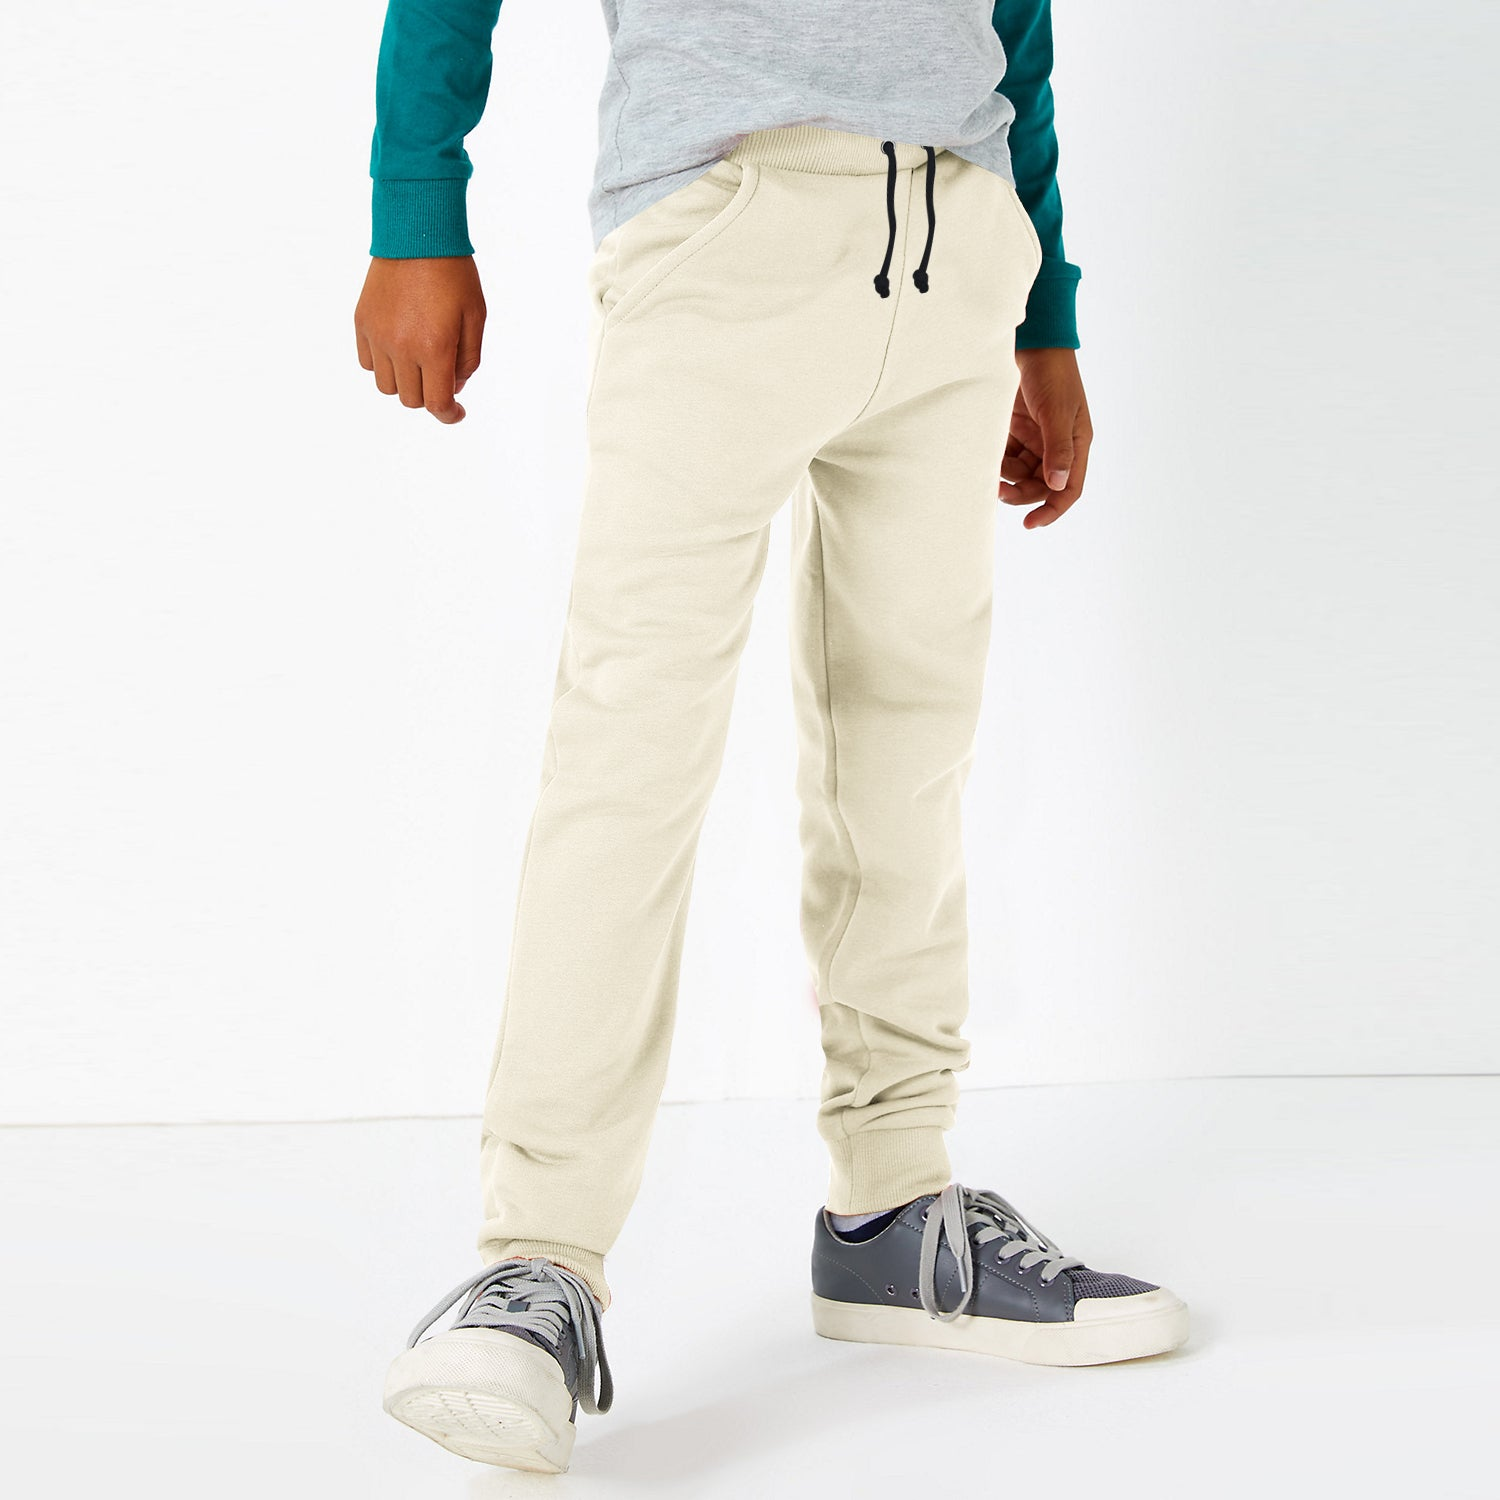 Uneek Jersey Jogger Trouser For Boys-Off White-BE10268